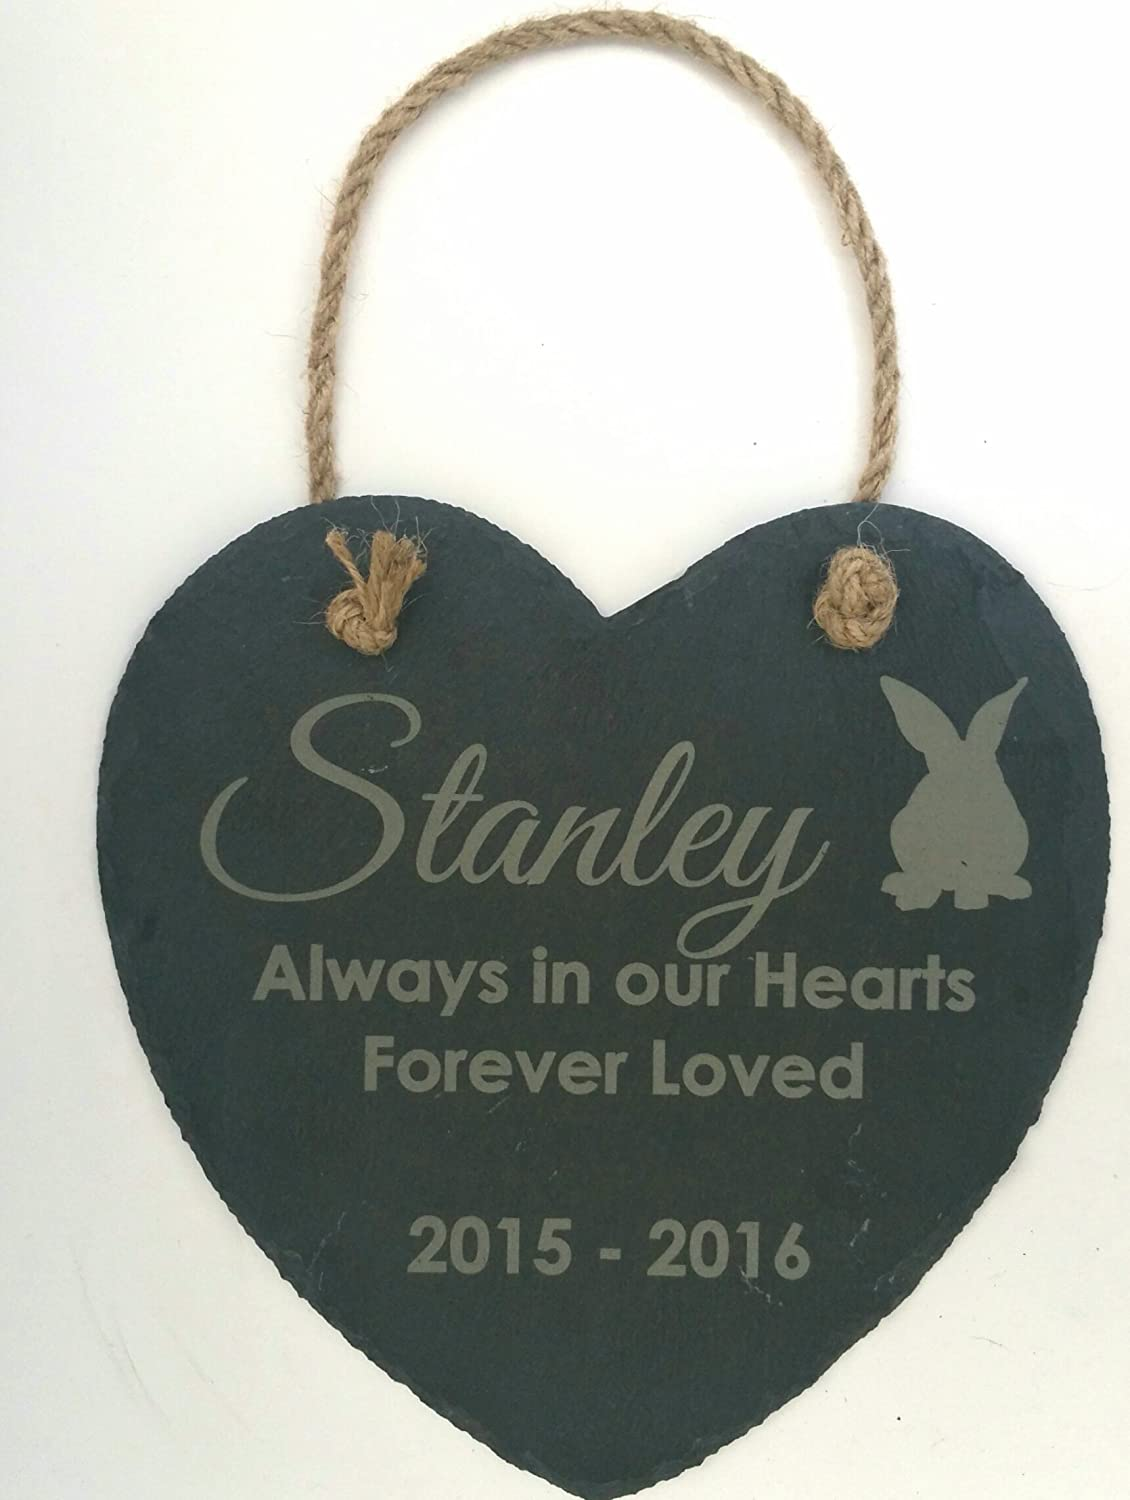 Personalised Hanging Engraved Heart Shape Natural Slate Pet Memorial Grave Marker Plaque Legacy Lasercrafts